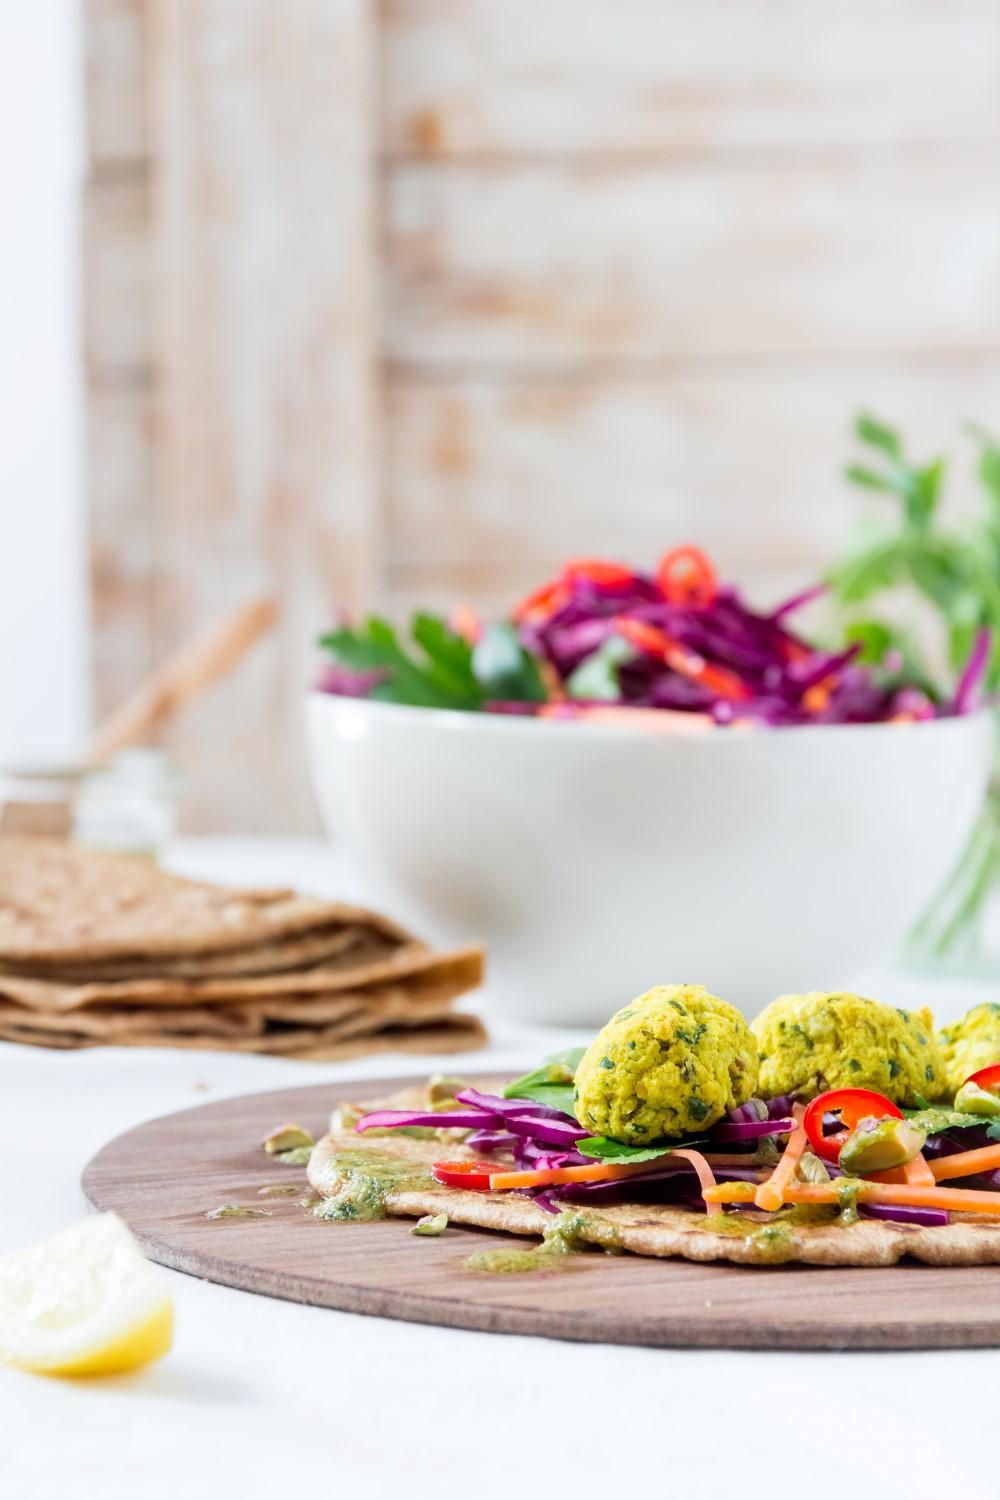 Use Your Noodles - Turmeric Falafel Wraps